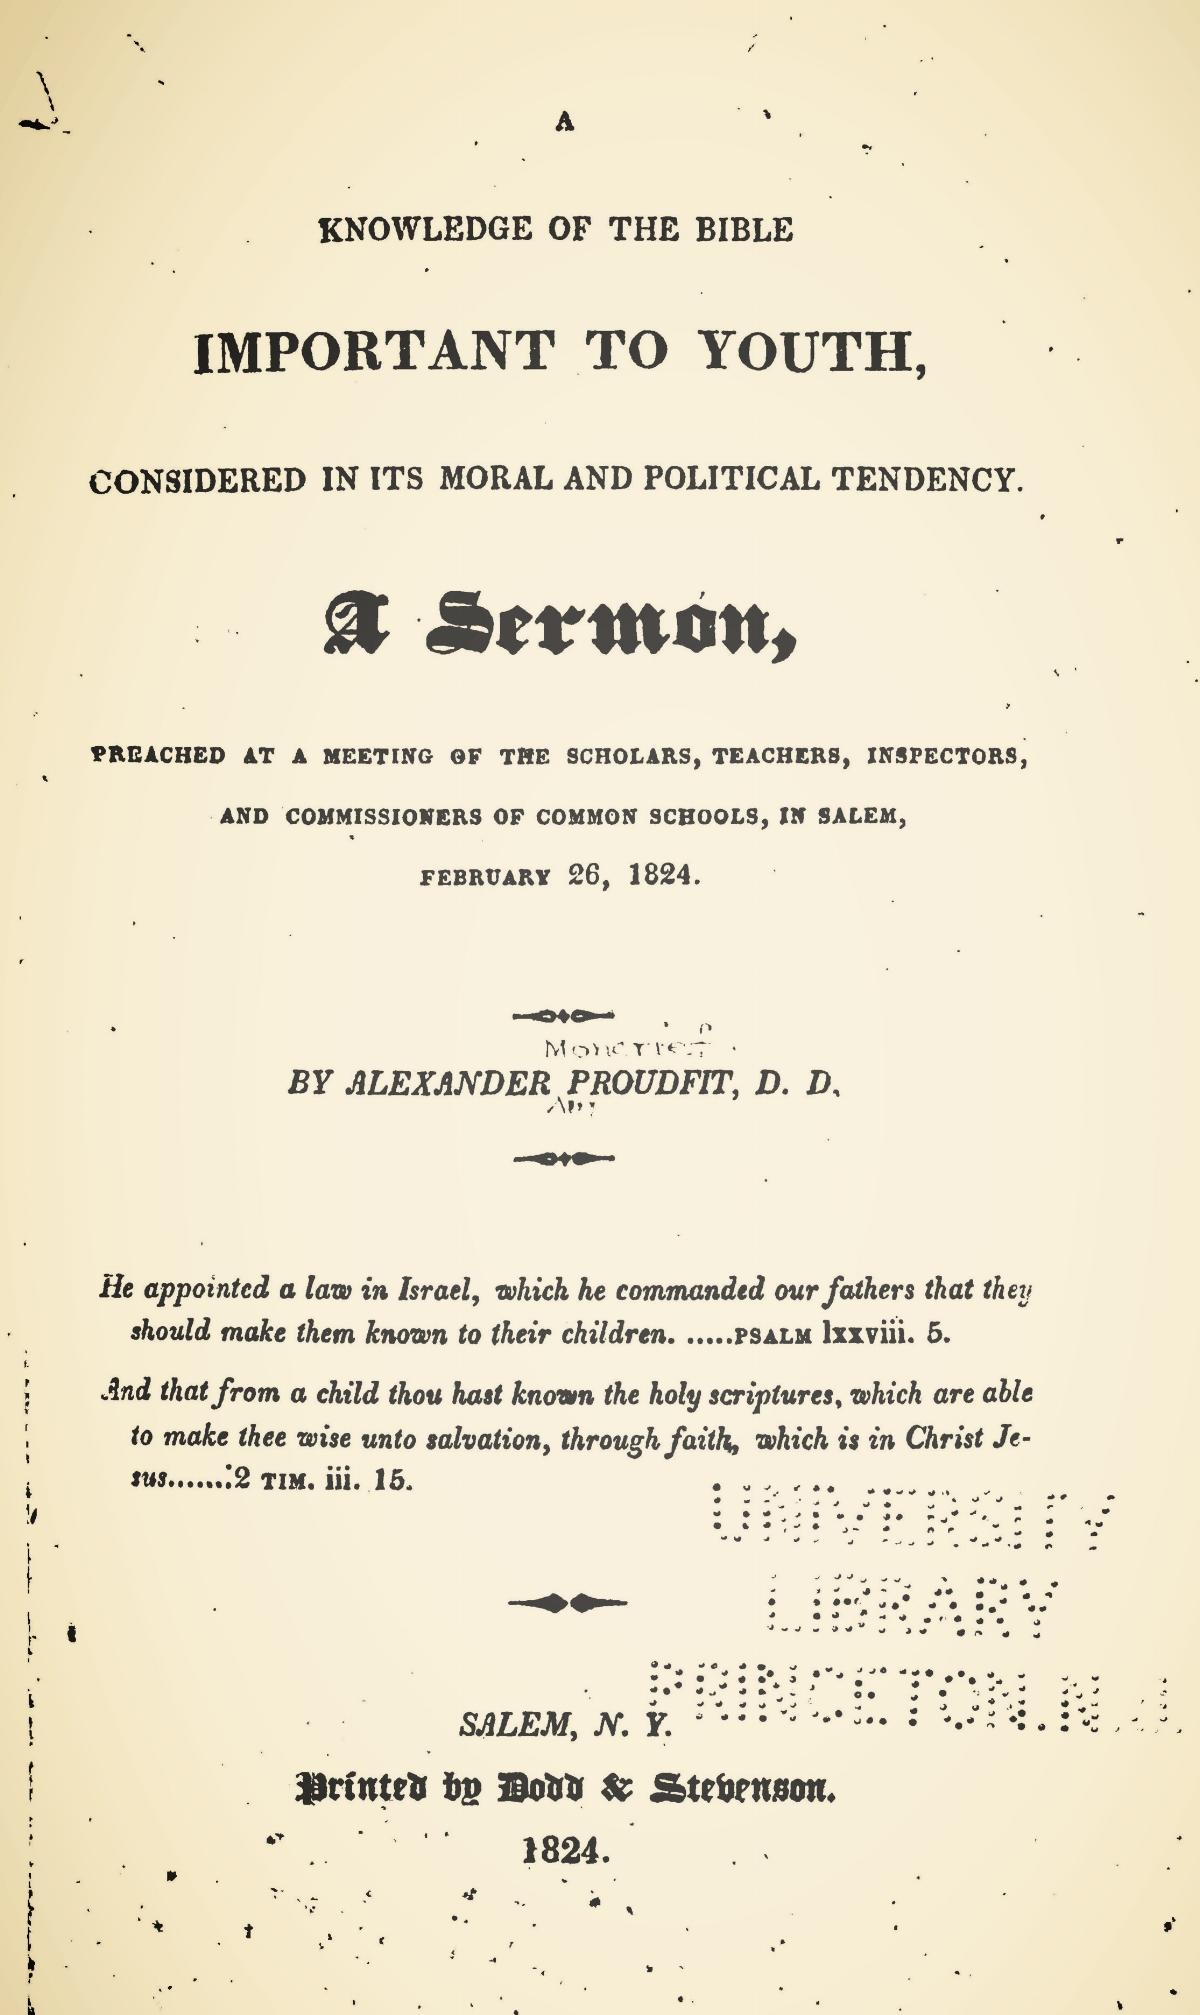 Proudfit, Alexander, A Knowledge of the Bible Important to Youth Title Page.jpg